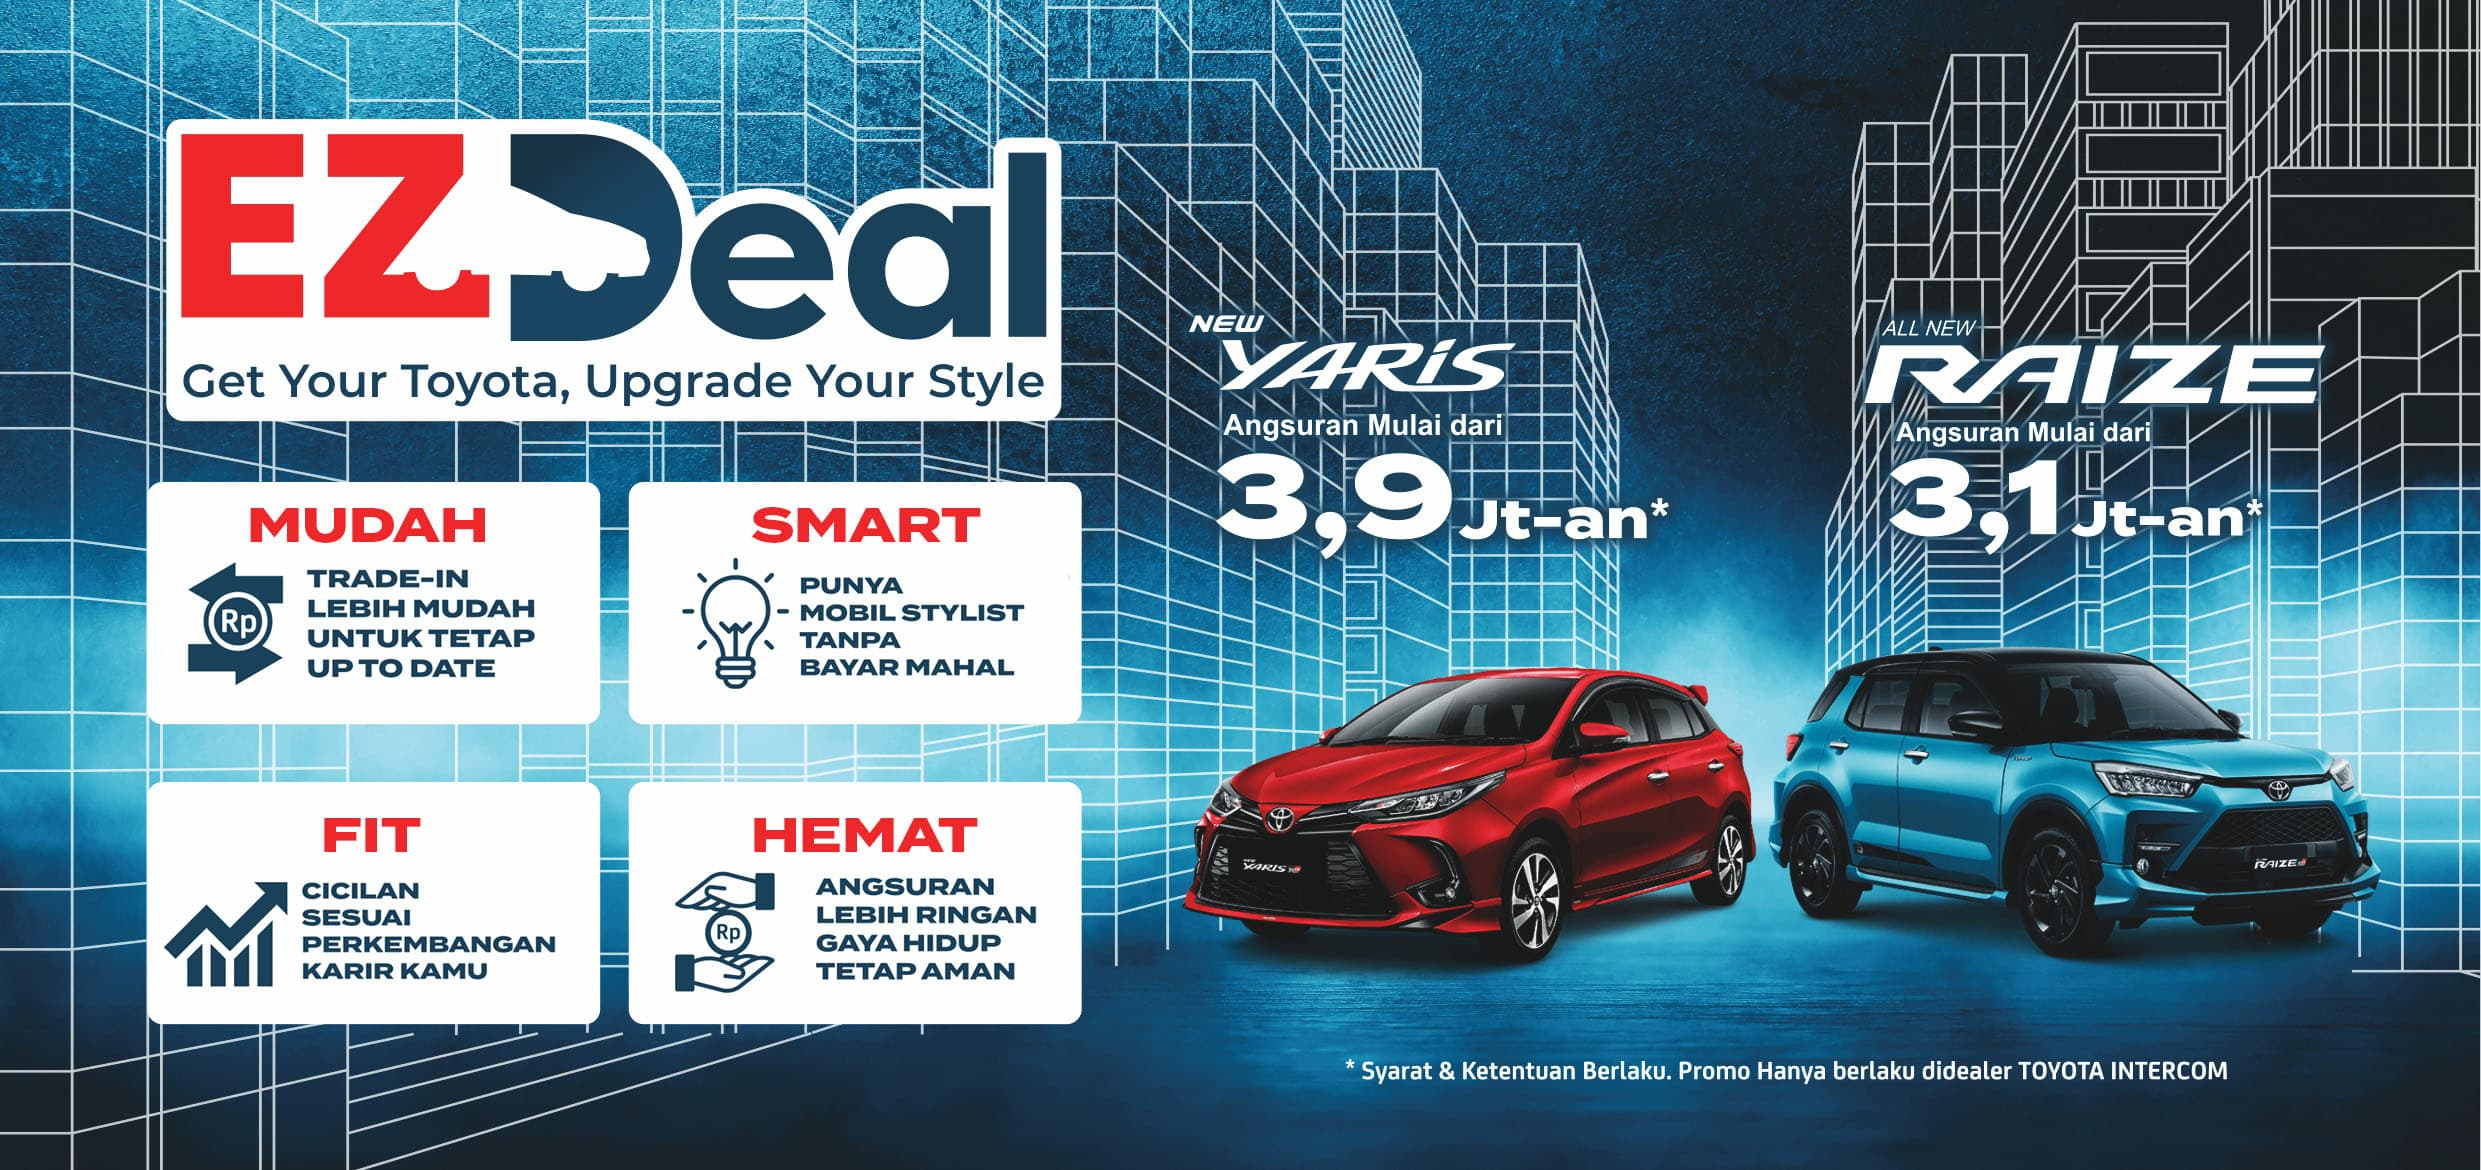 EZ DEAL Get Your Toyota, Upgrade Your Style